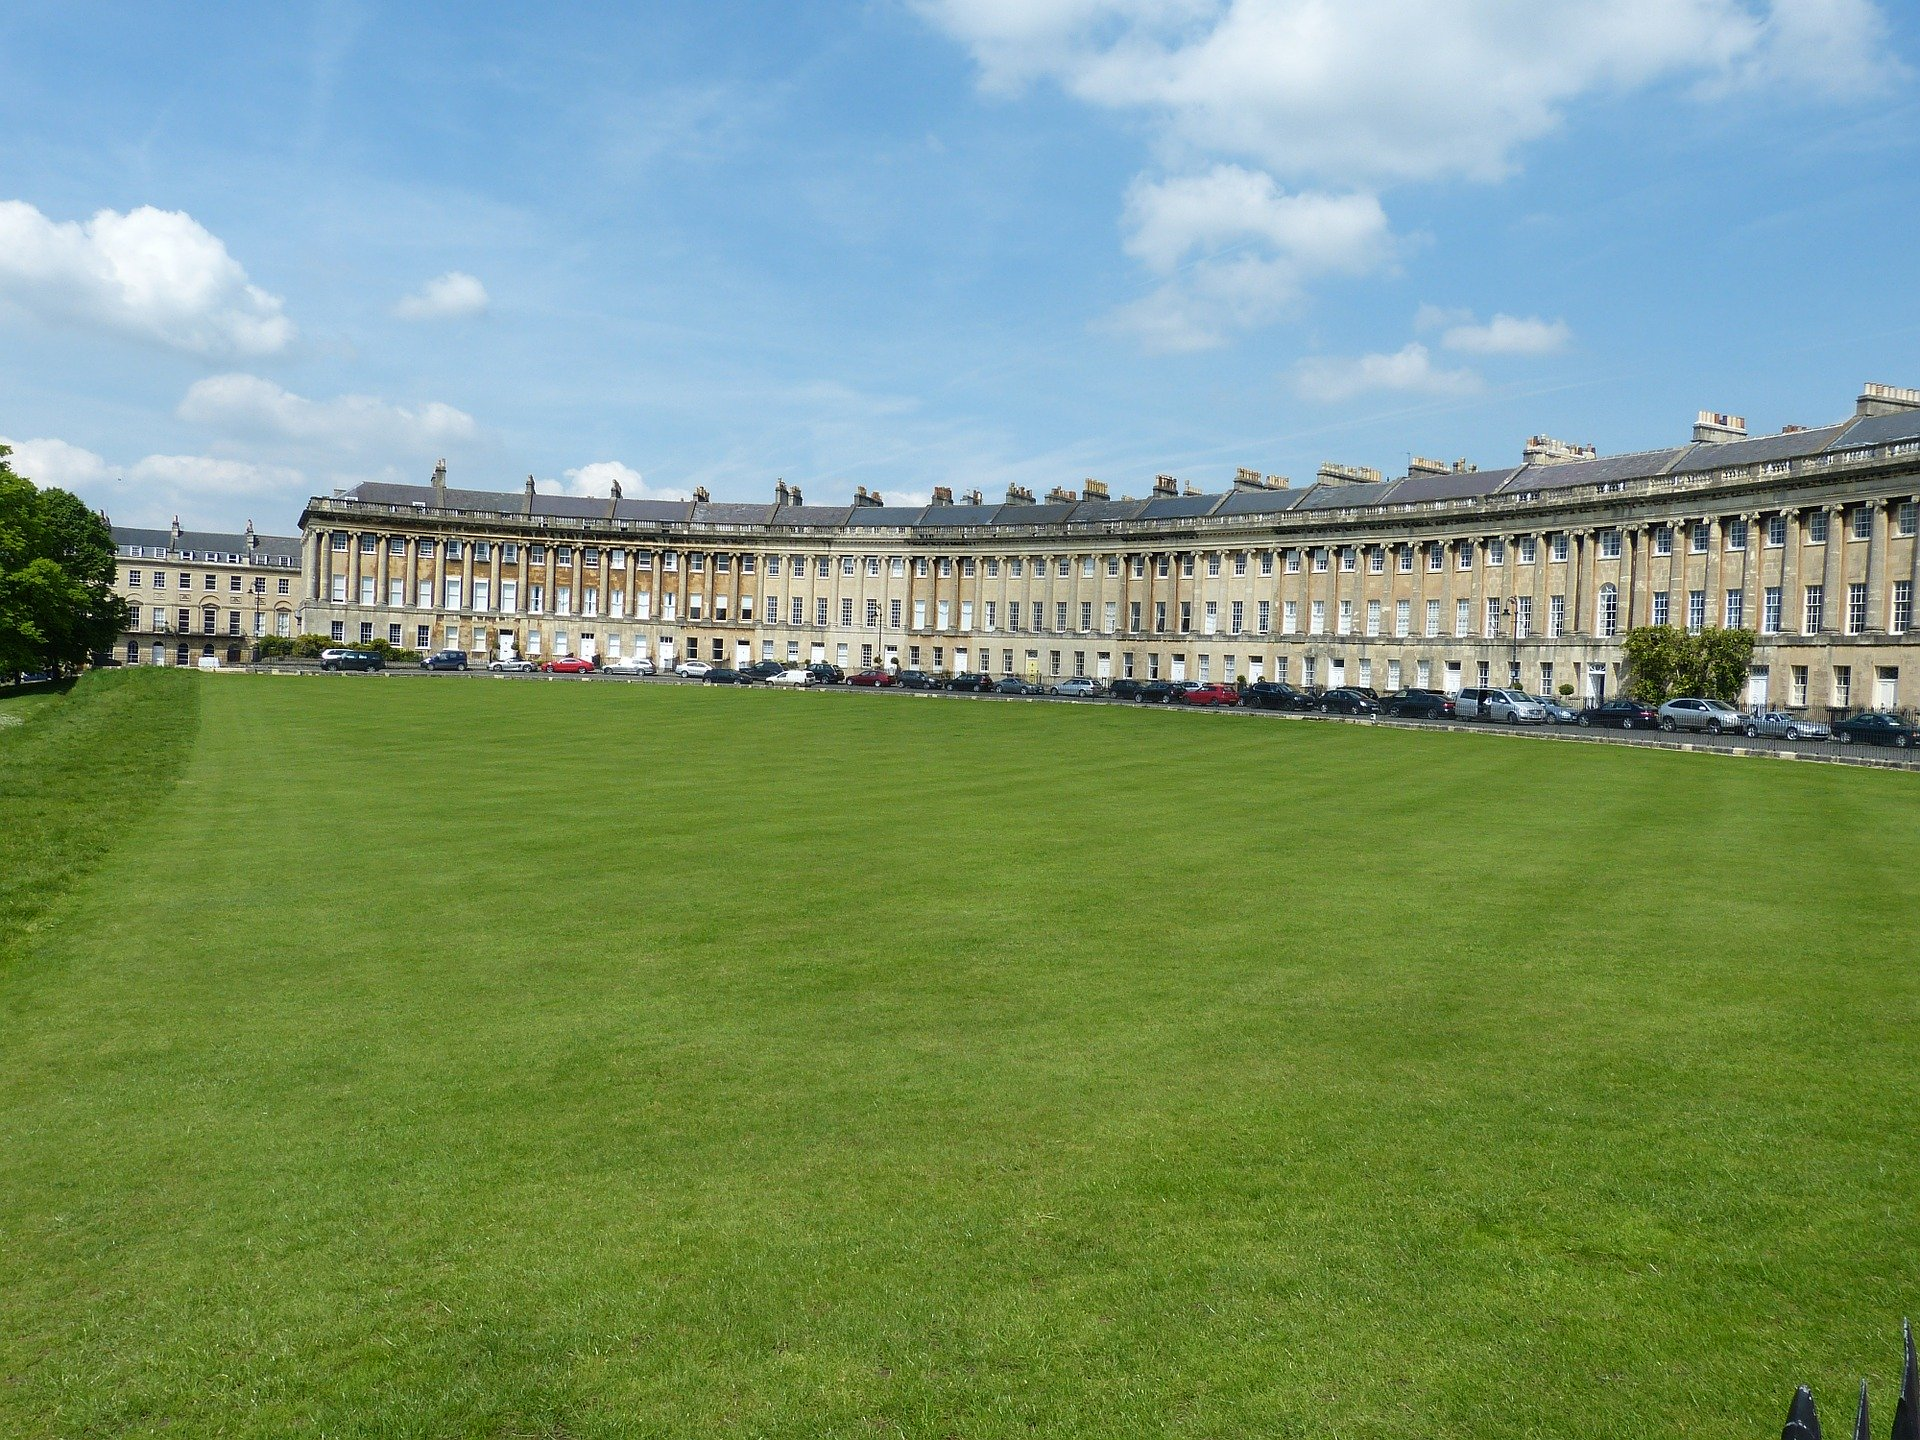 Attractions like the Stunning Royal Crescent is what makes Bath so great!